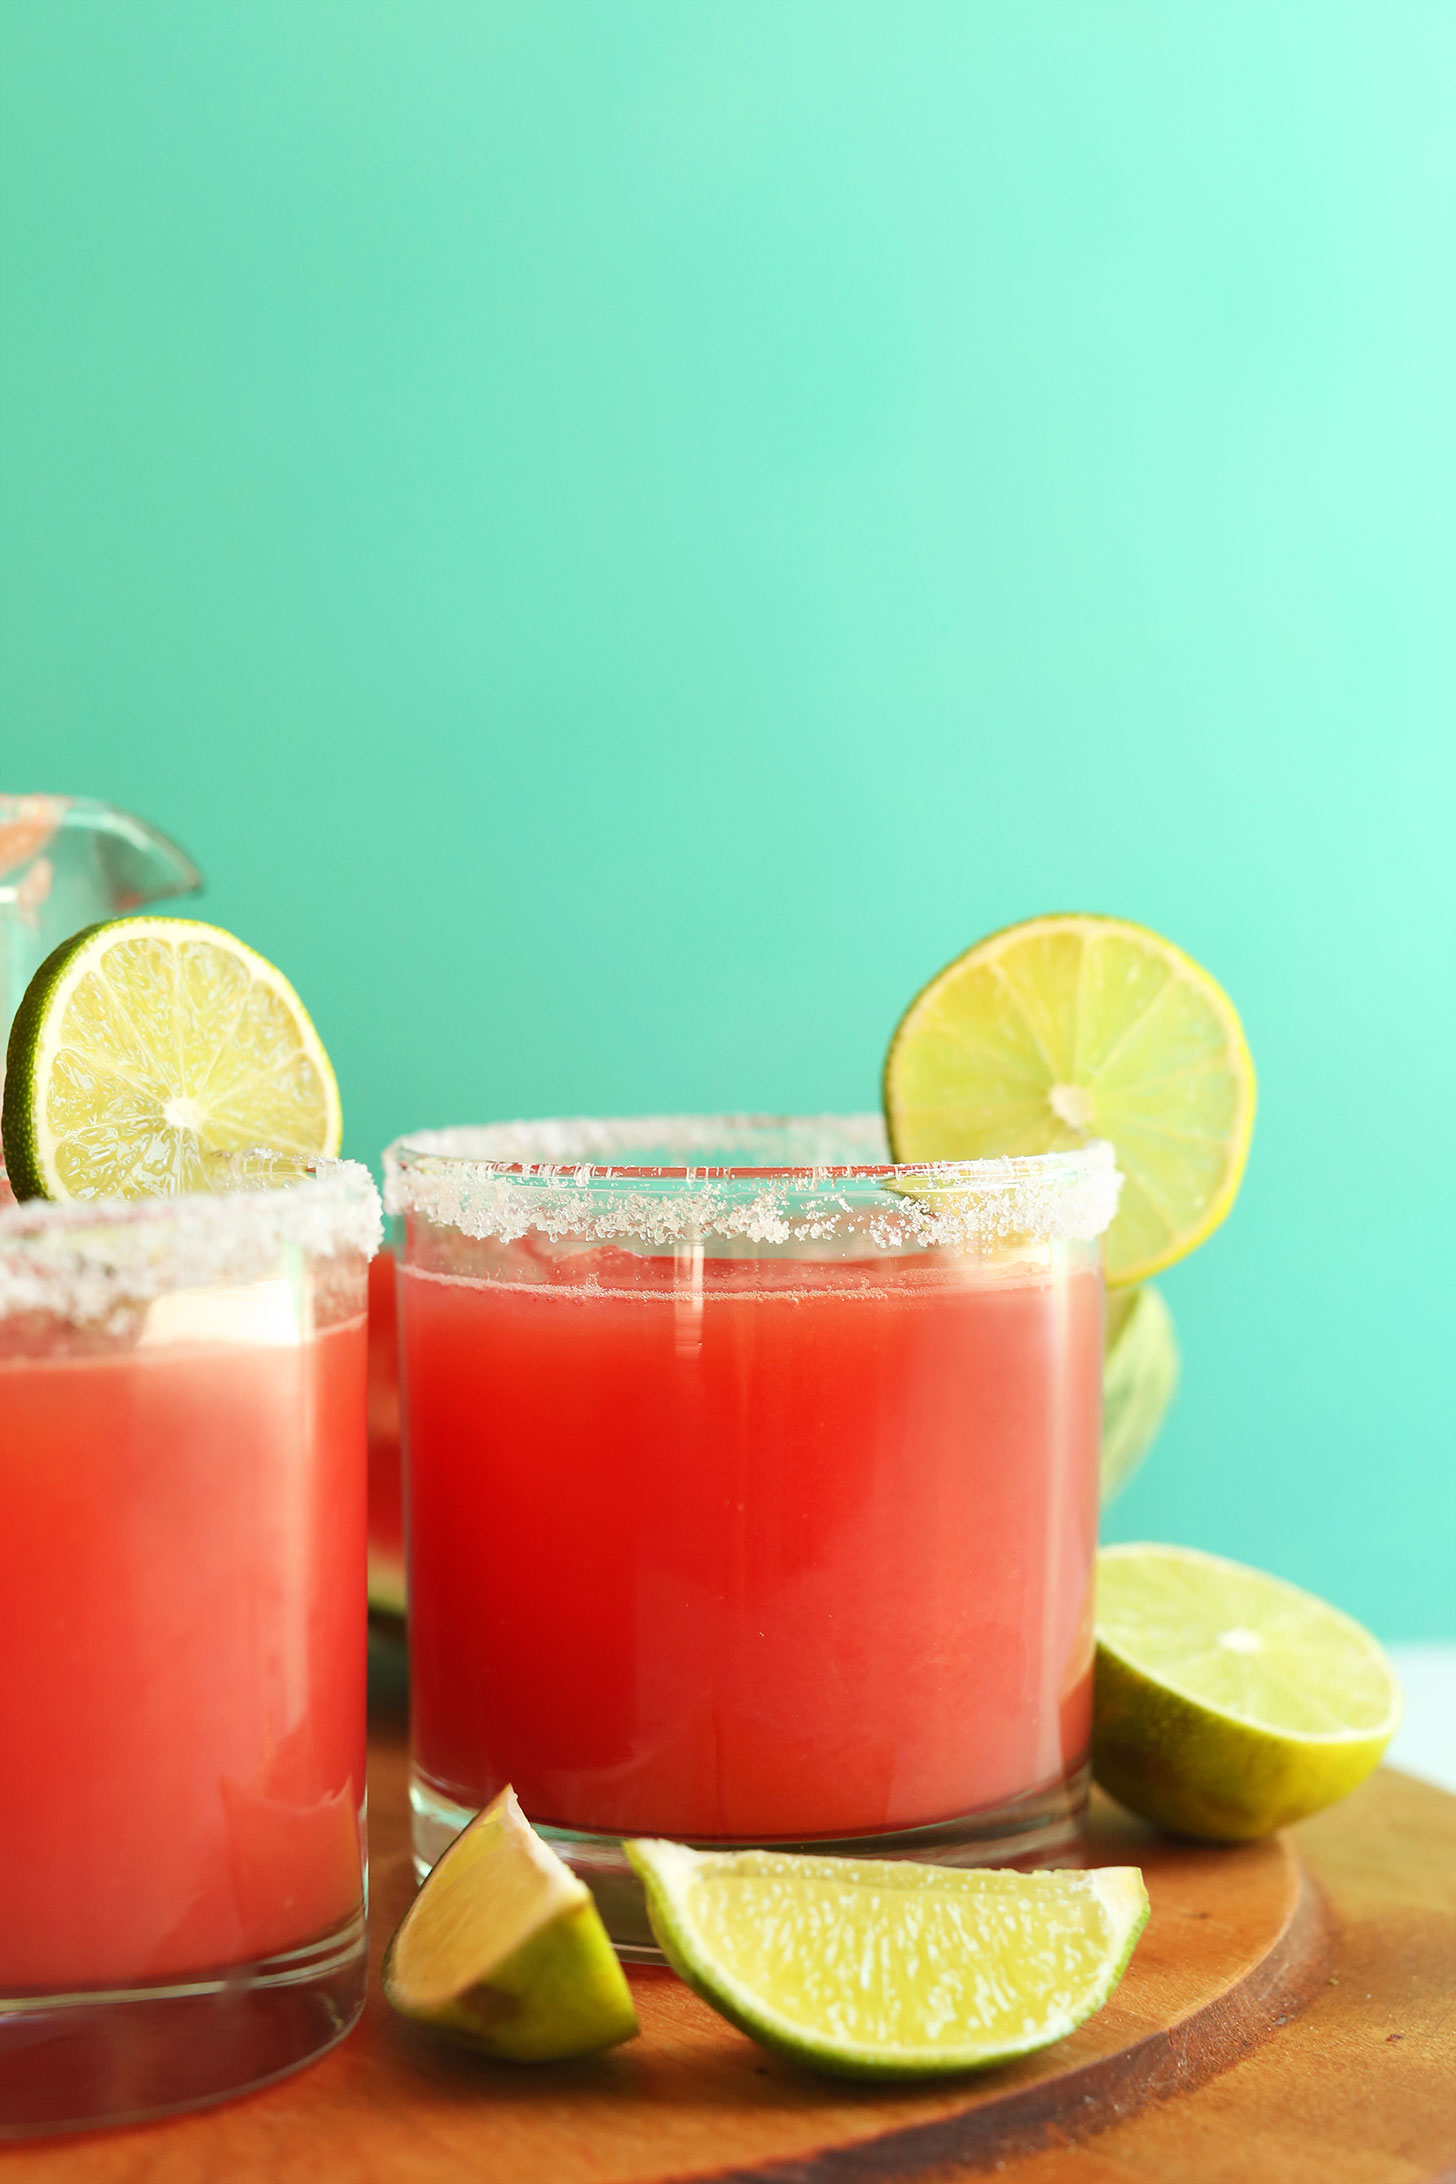 Glasses of our vegan watermelon margaritas for a summer drink recipe